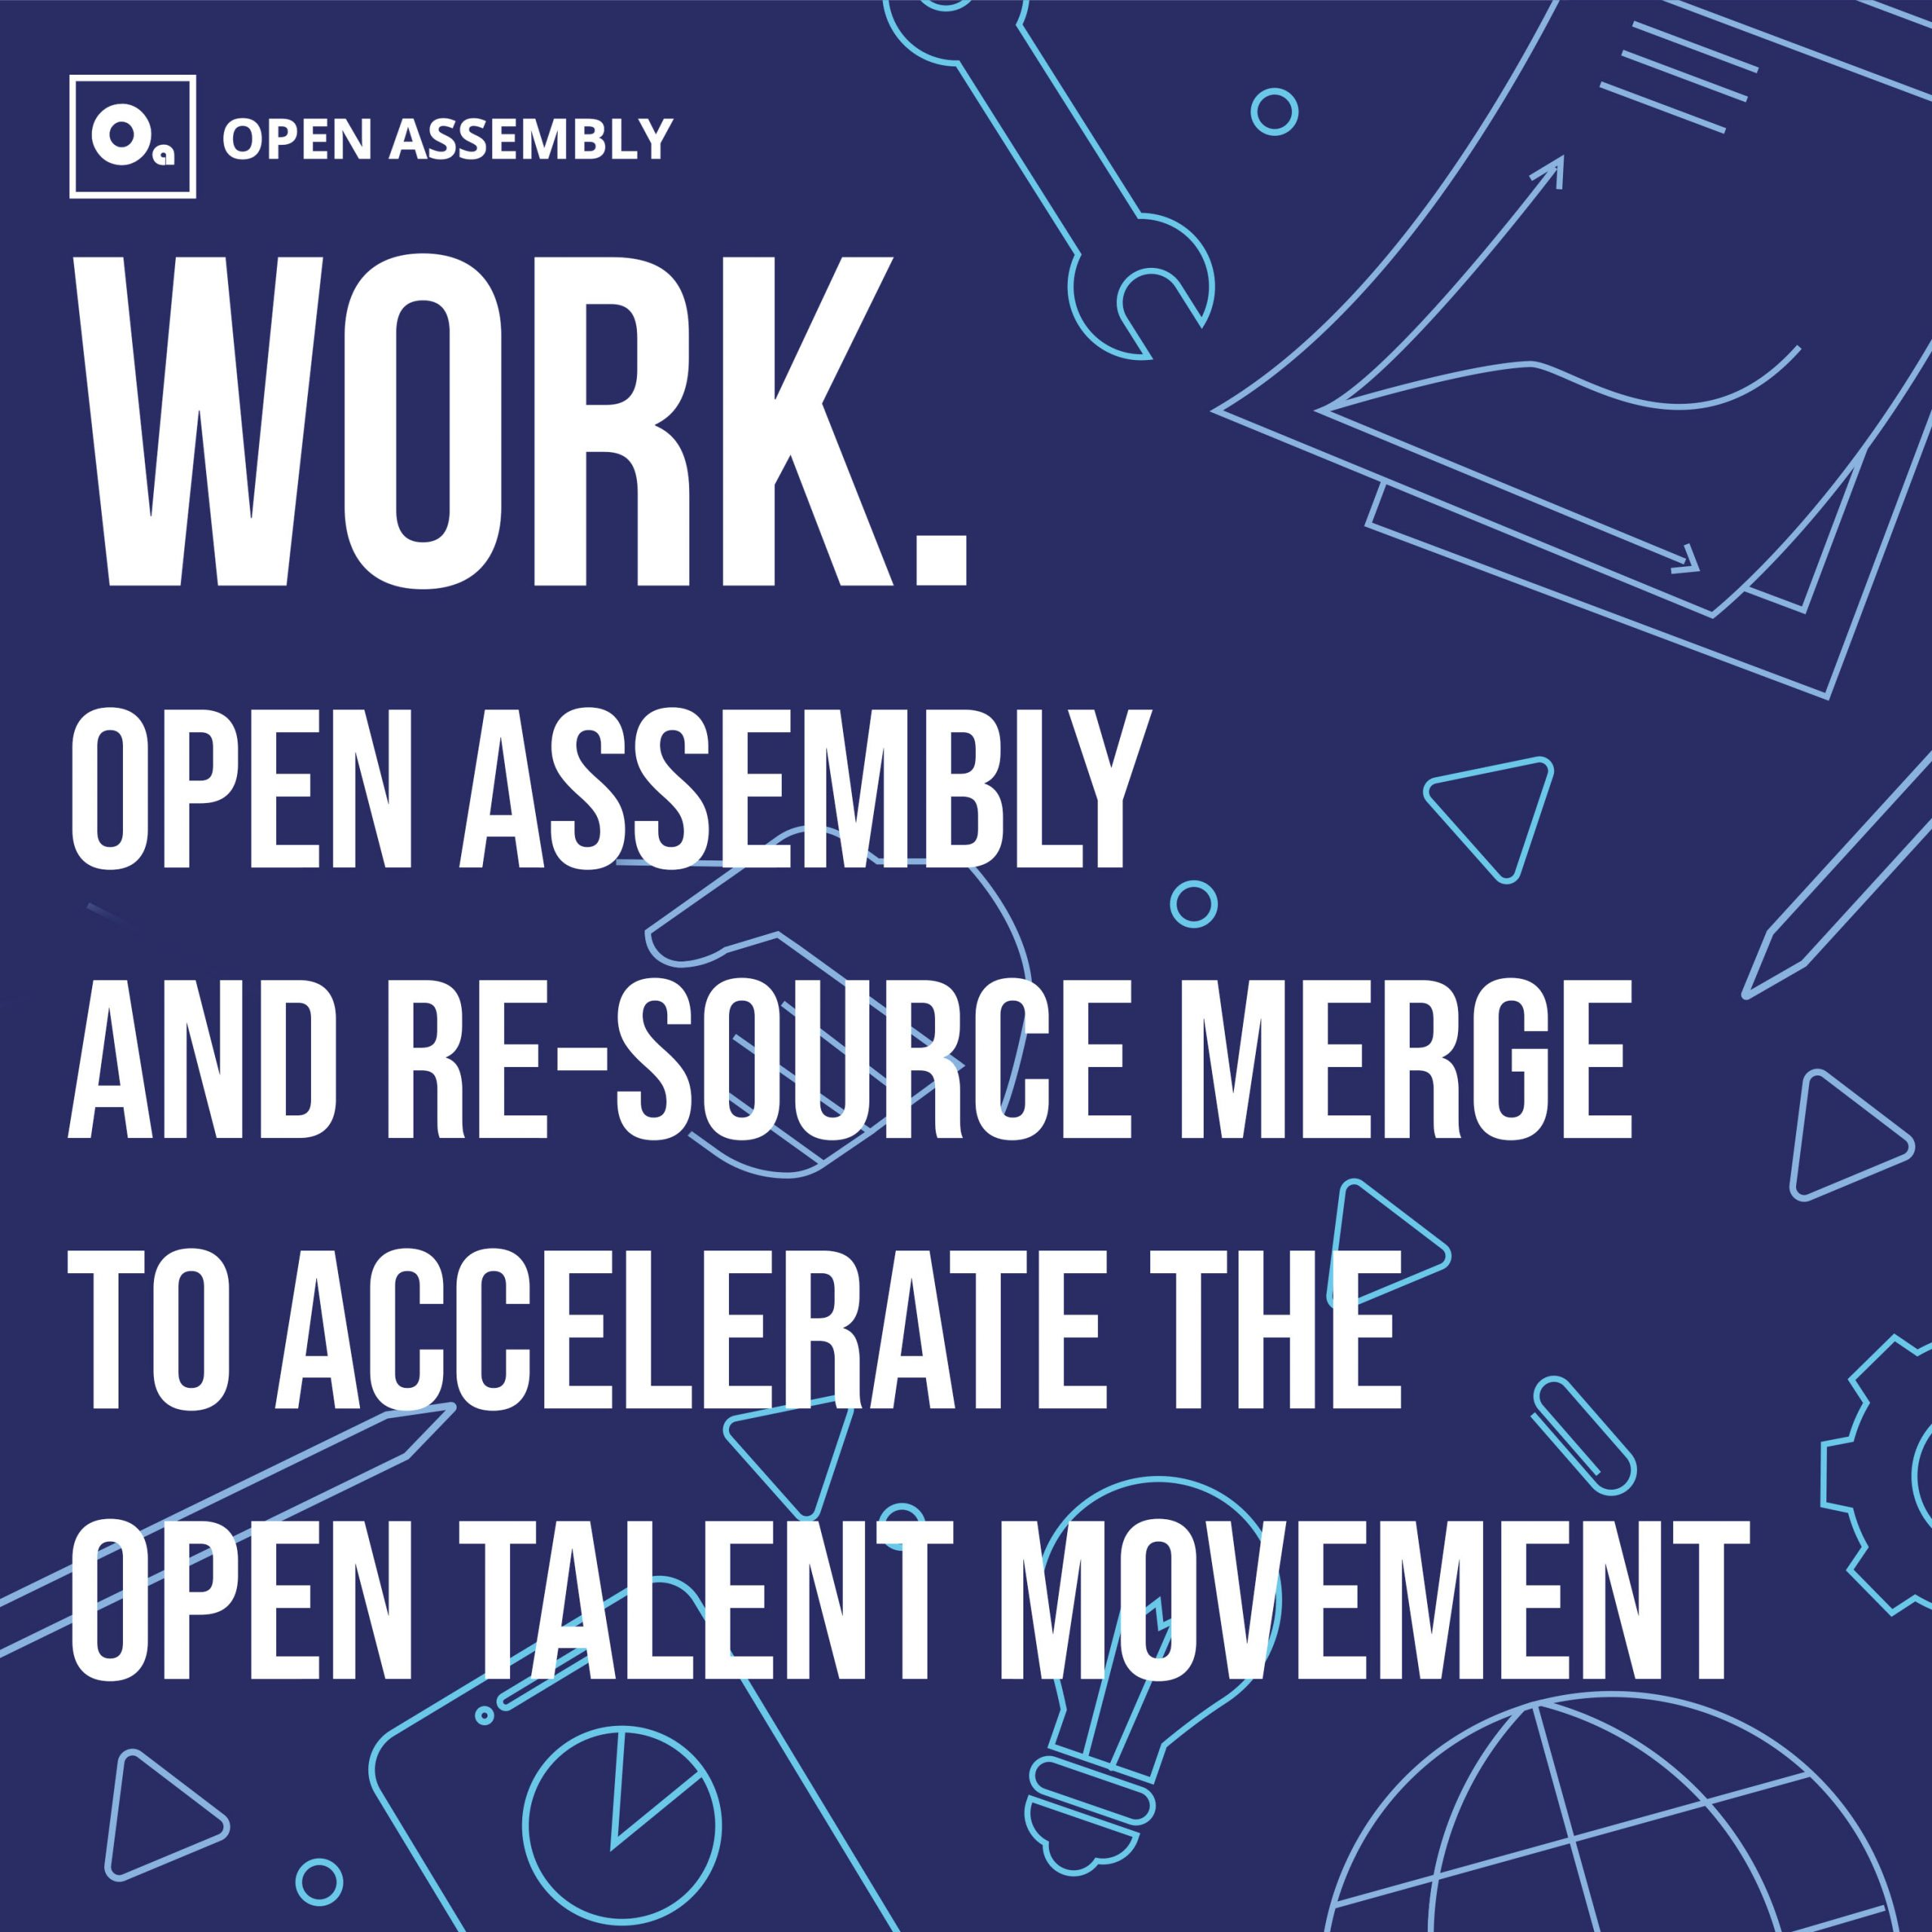 Open Assembly Re-source